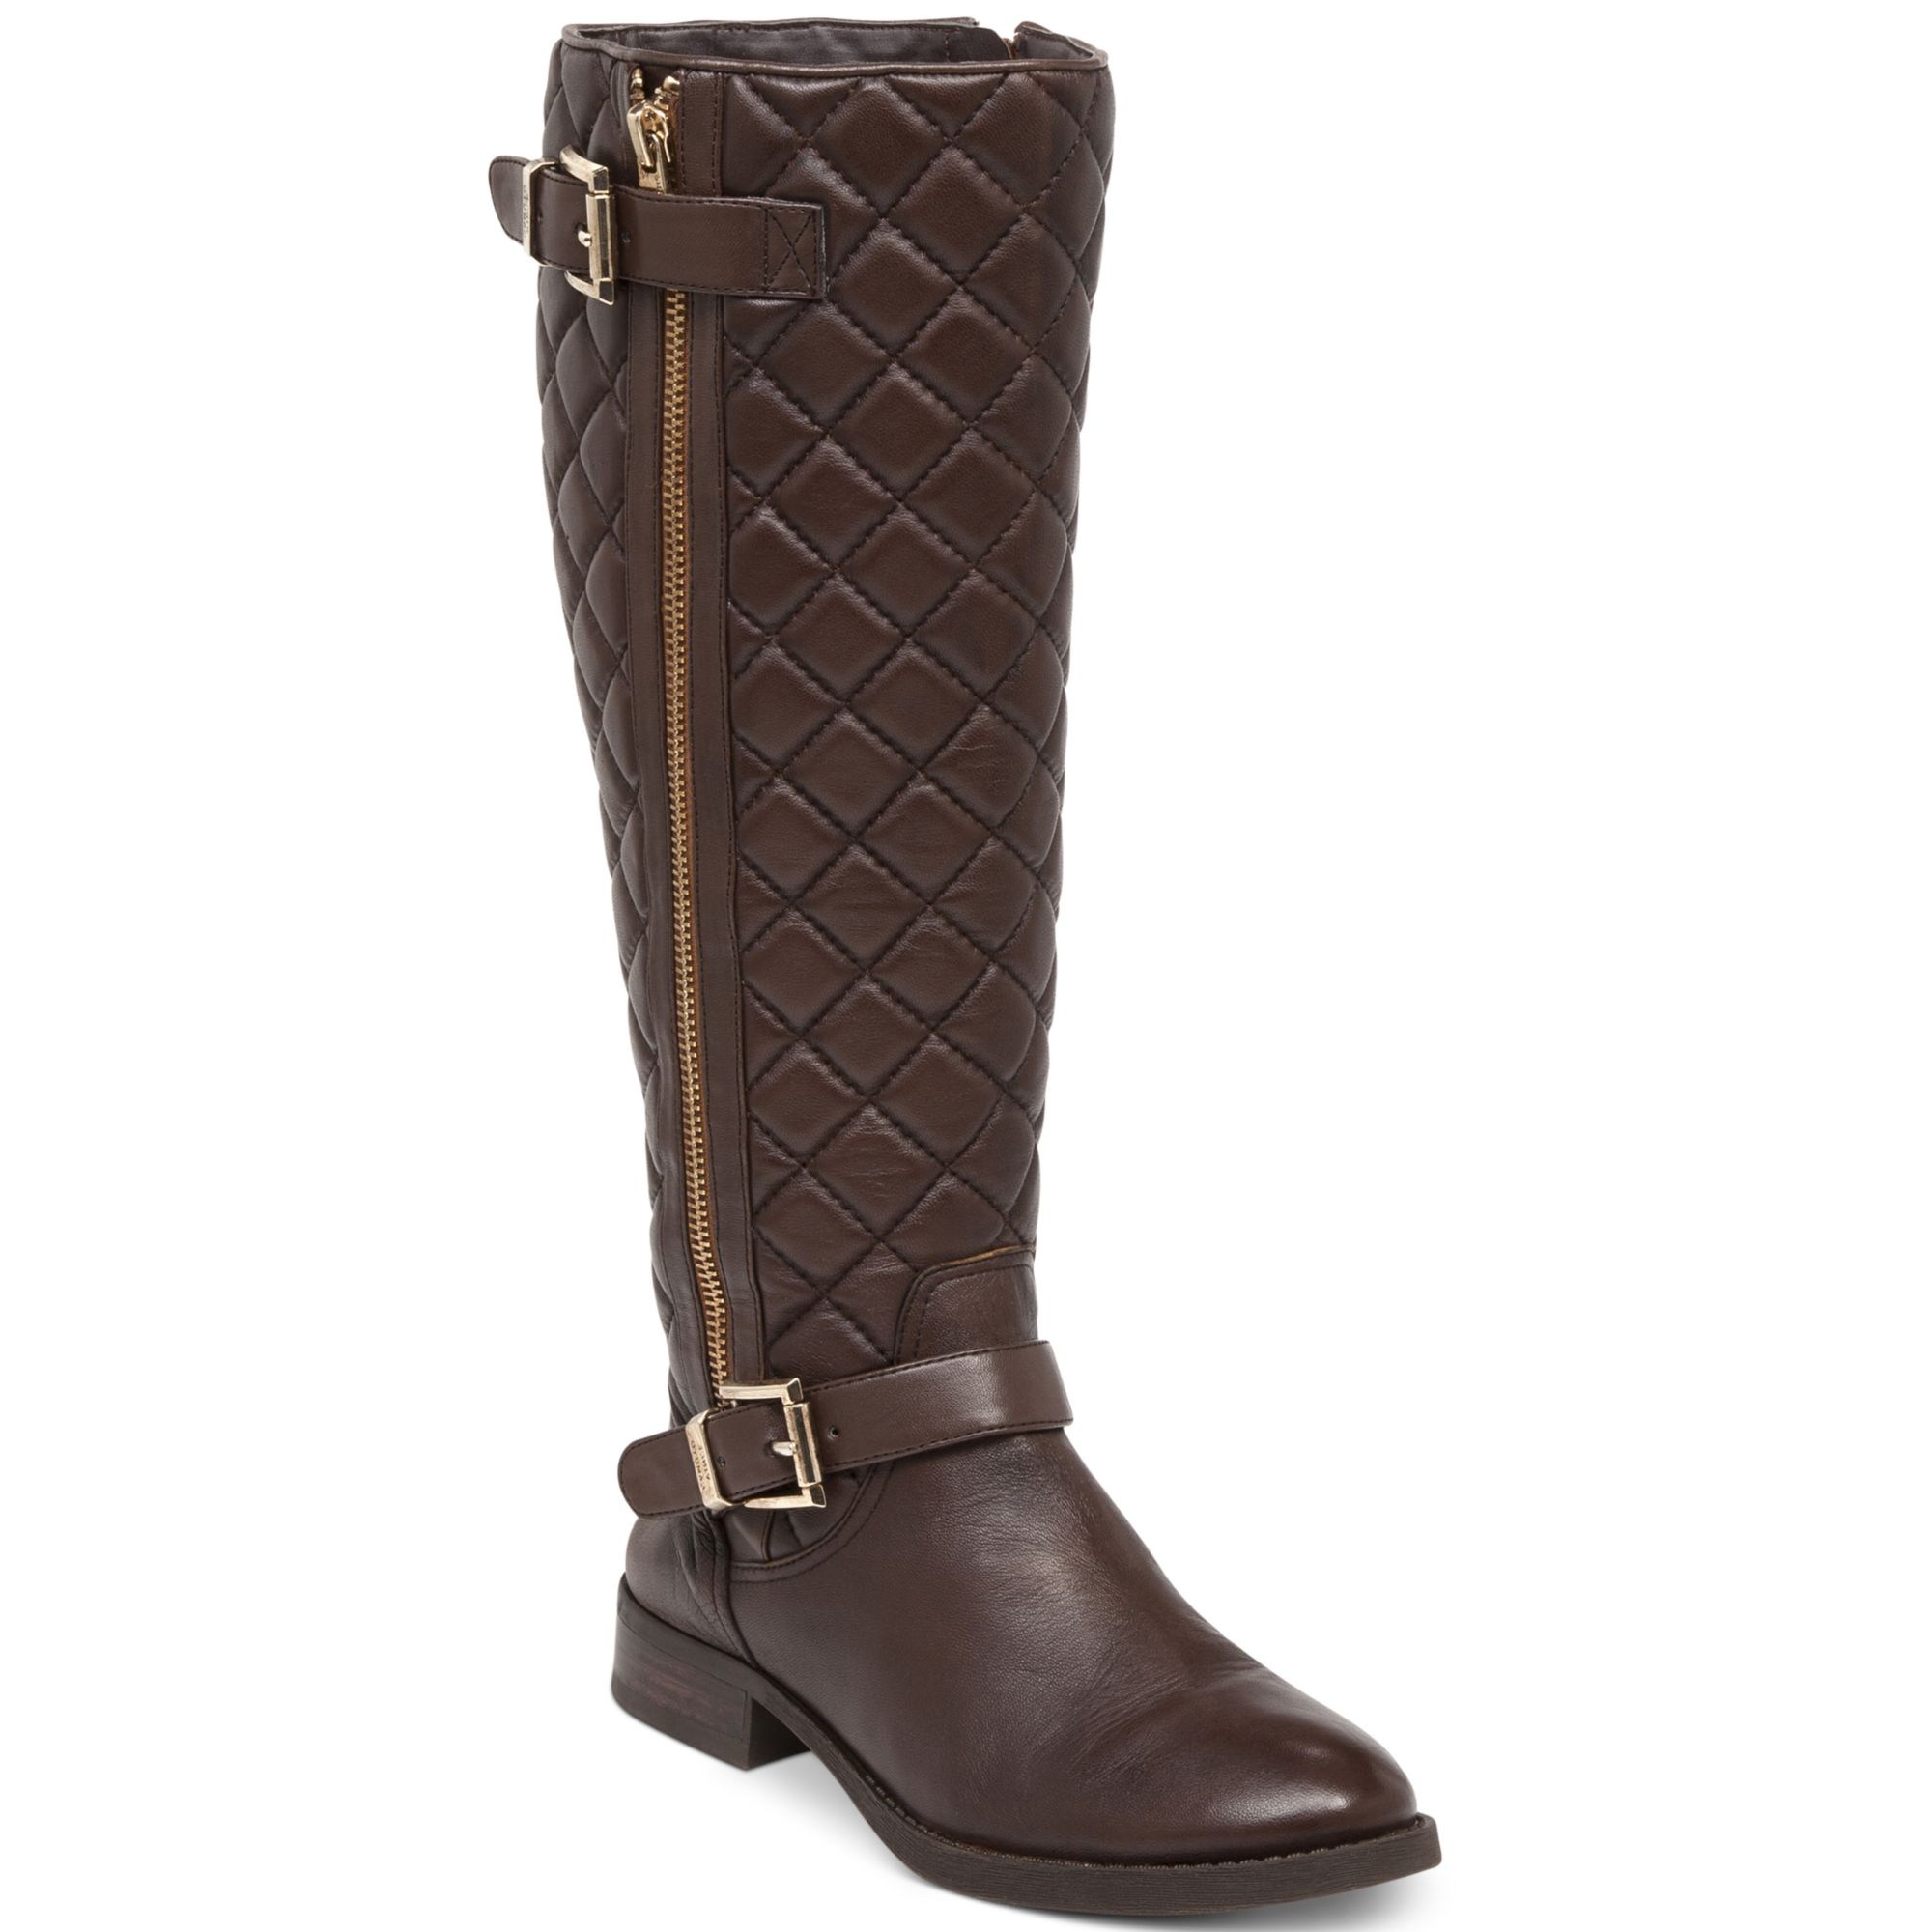 VINCE CAMUTO FREDRICA WIDE CALF QUILTED BROWN LEATHER RIDING BOOTS ...